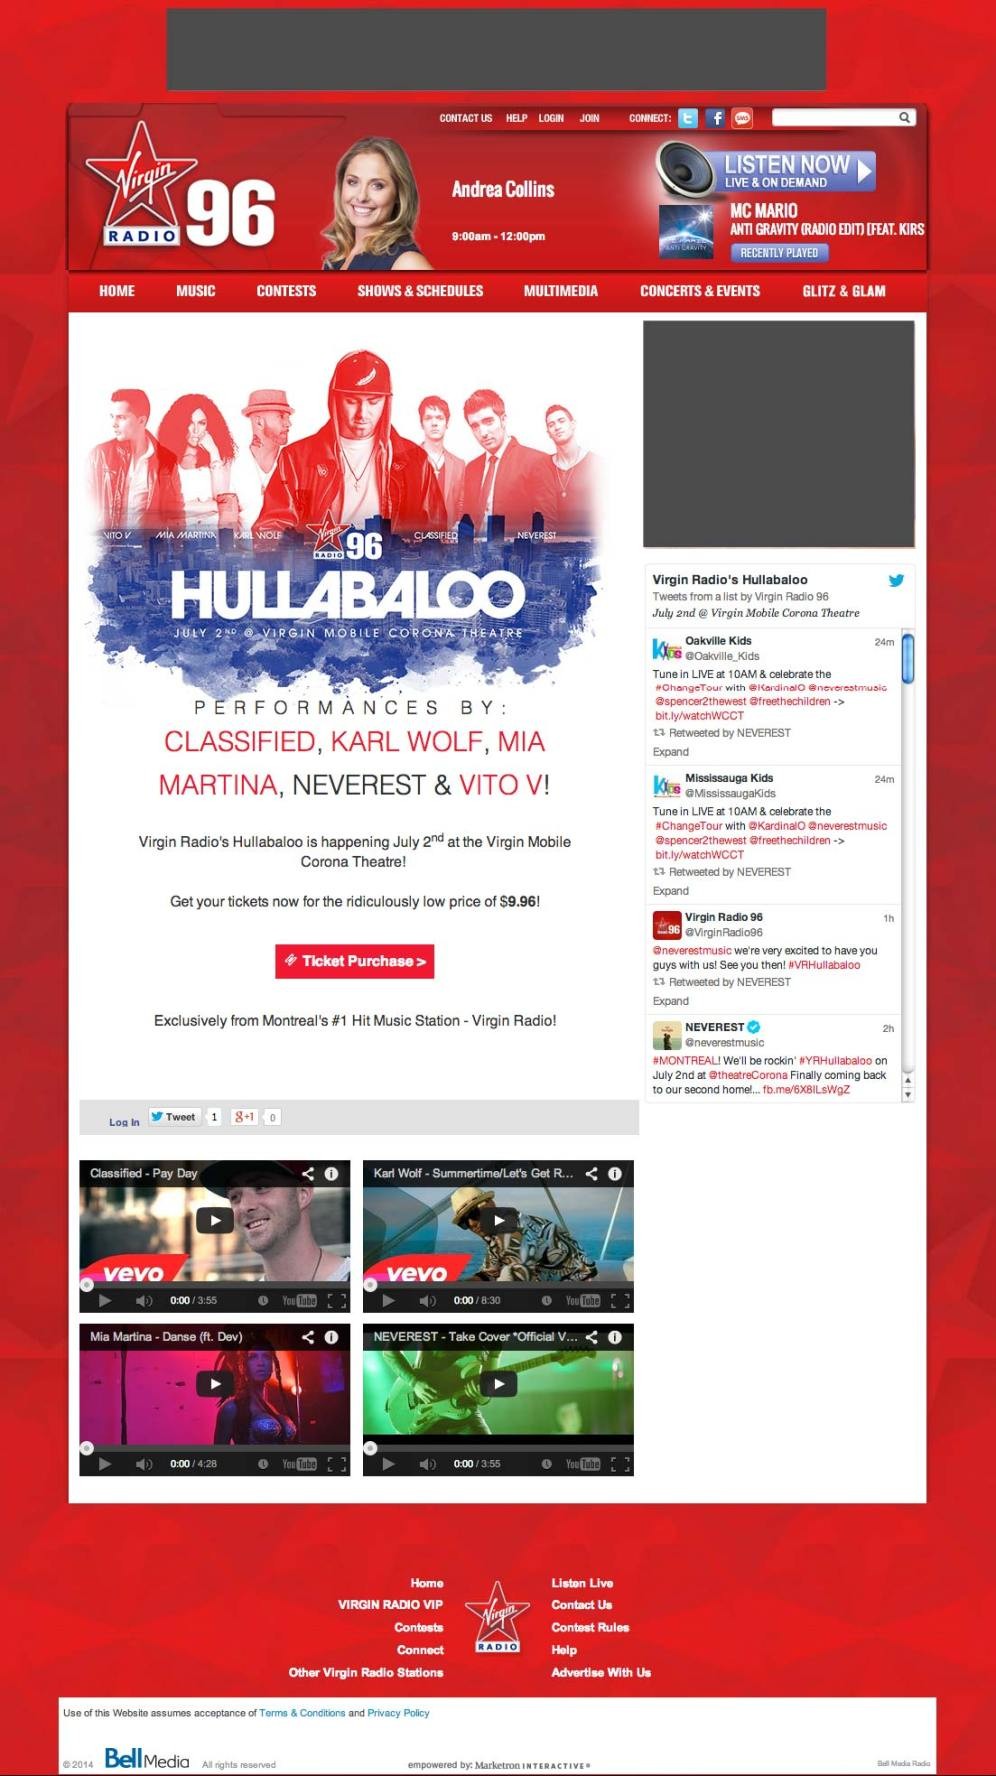 Virgin Radio's Hullabaloo Info page